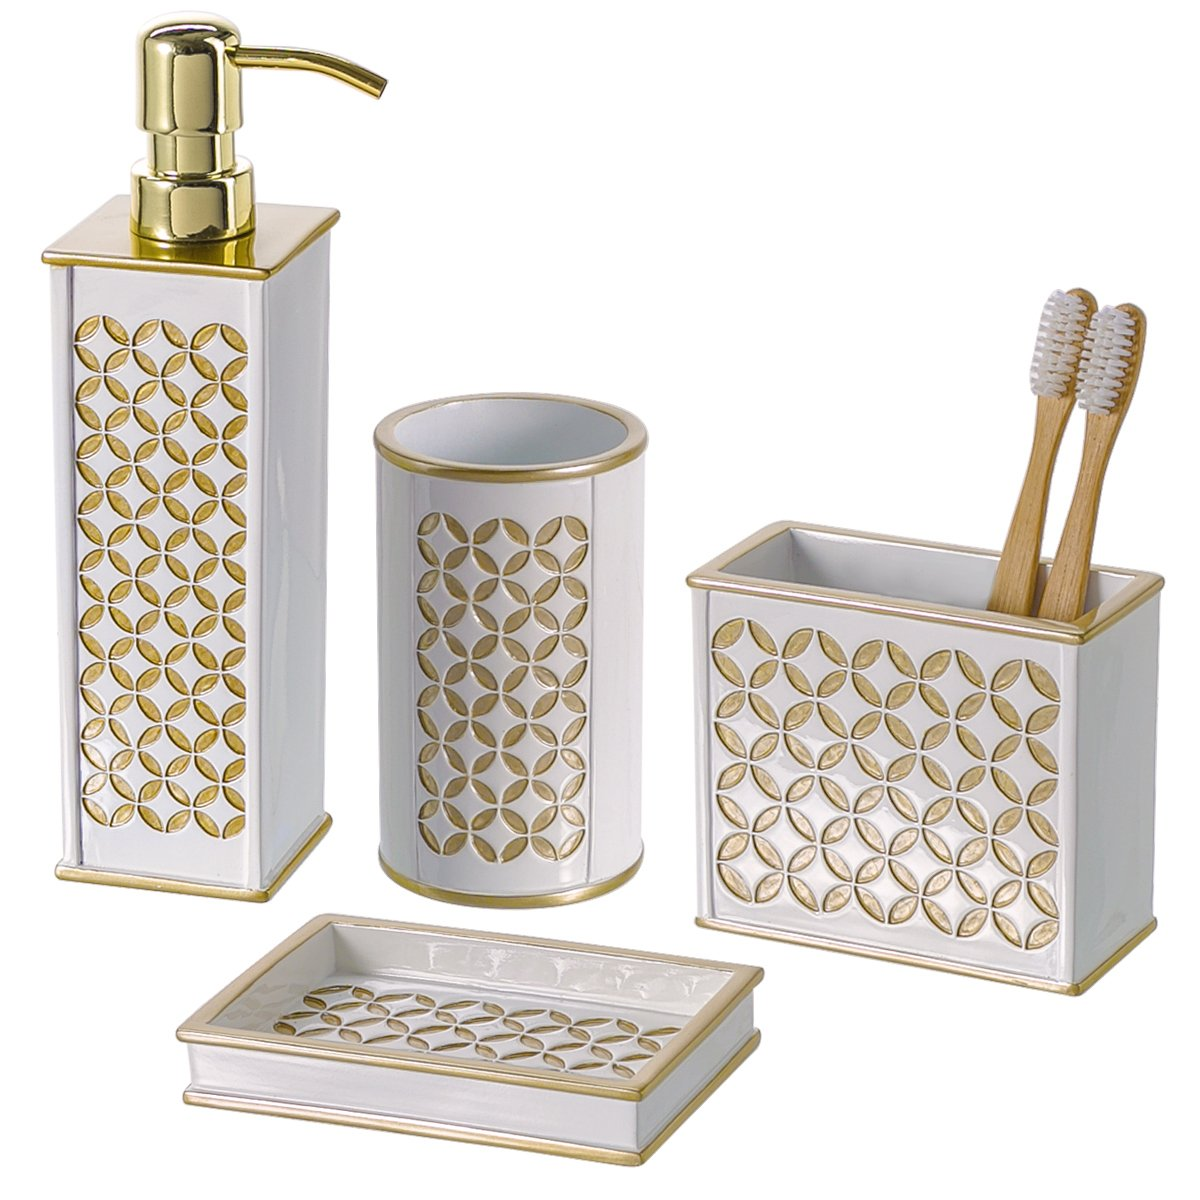 Bathroom Soap And Lotion Dispenser Set. Amazon Com Diamond Lattice 4pc Bath Accessory Sets Decorative Lotion Dispenserdishtumblertoothbrush Holder Durable Accessories Set Best Bathroom